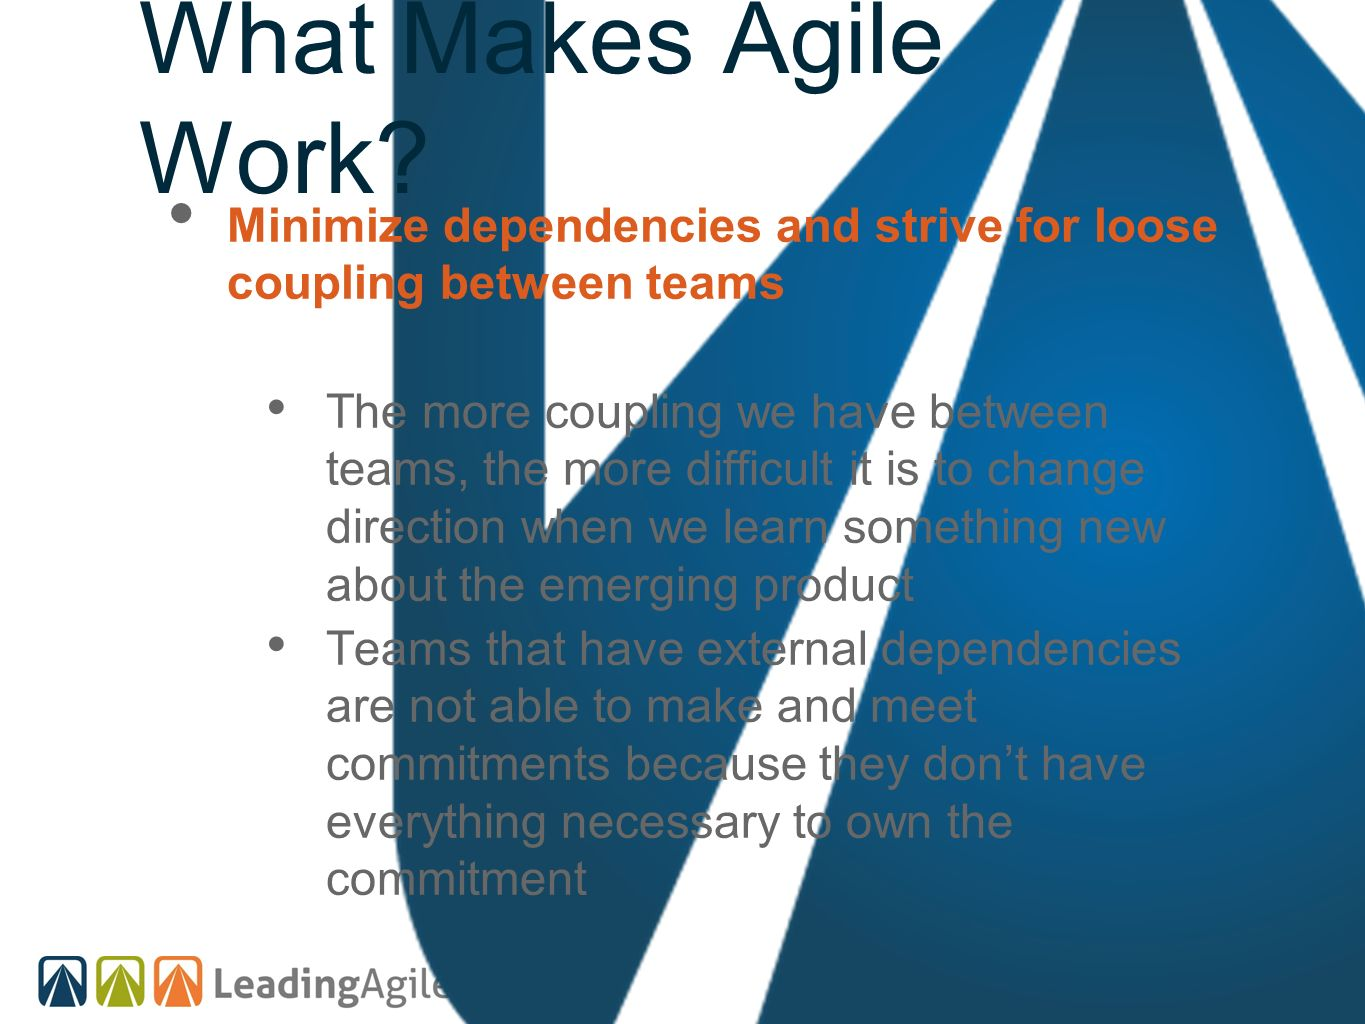 What Makes Agile Work Minimize dependencies and strive for loose coupling between teams.